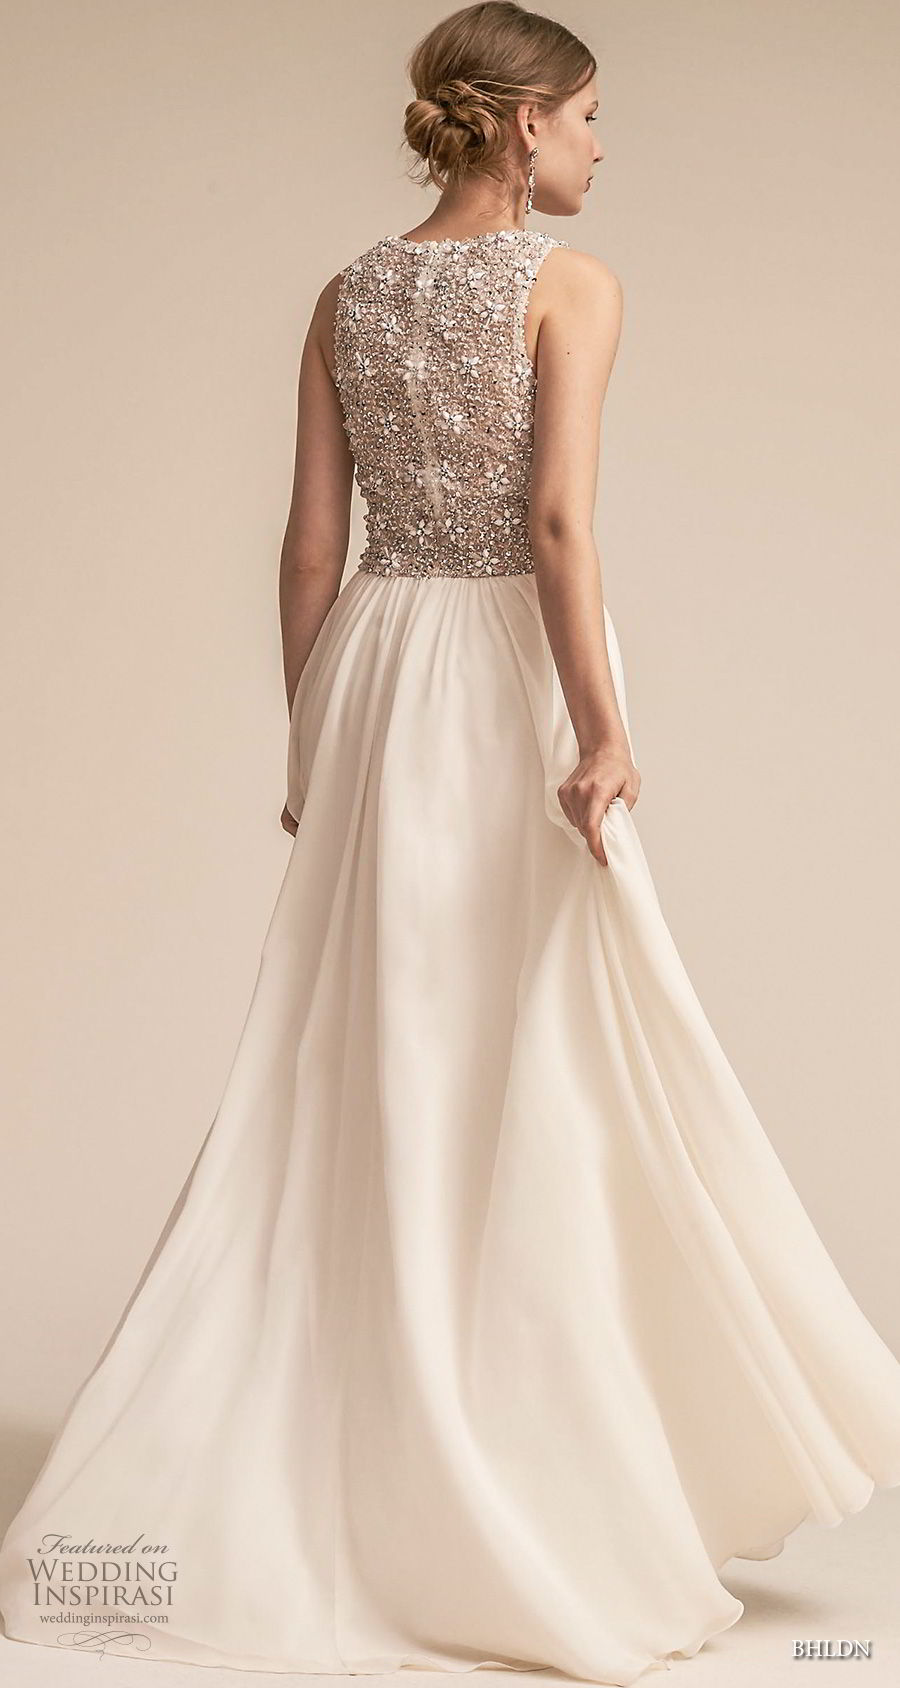 bhldn 2018 away bridal sleeveless deep v neck heavily embellished bodice romantic glamorous soft a line wedding dress covered back sweep train (5) bv